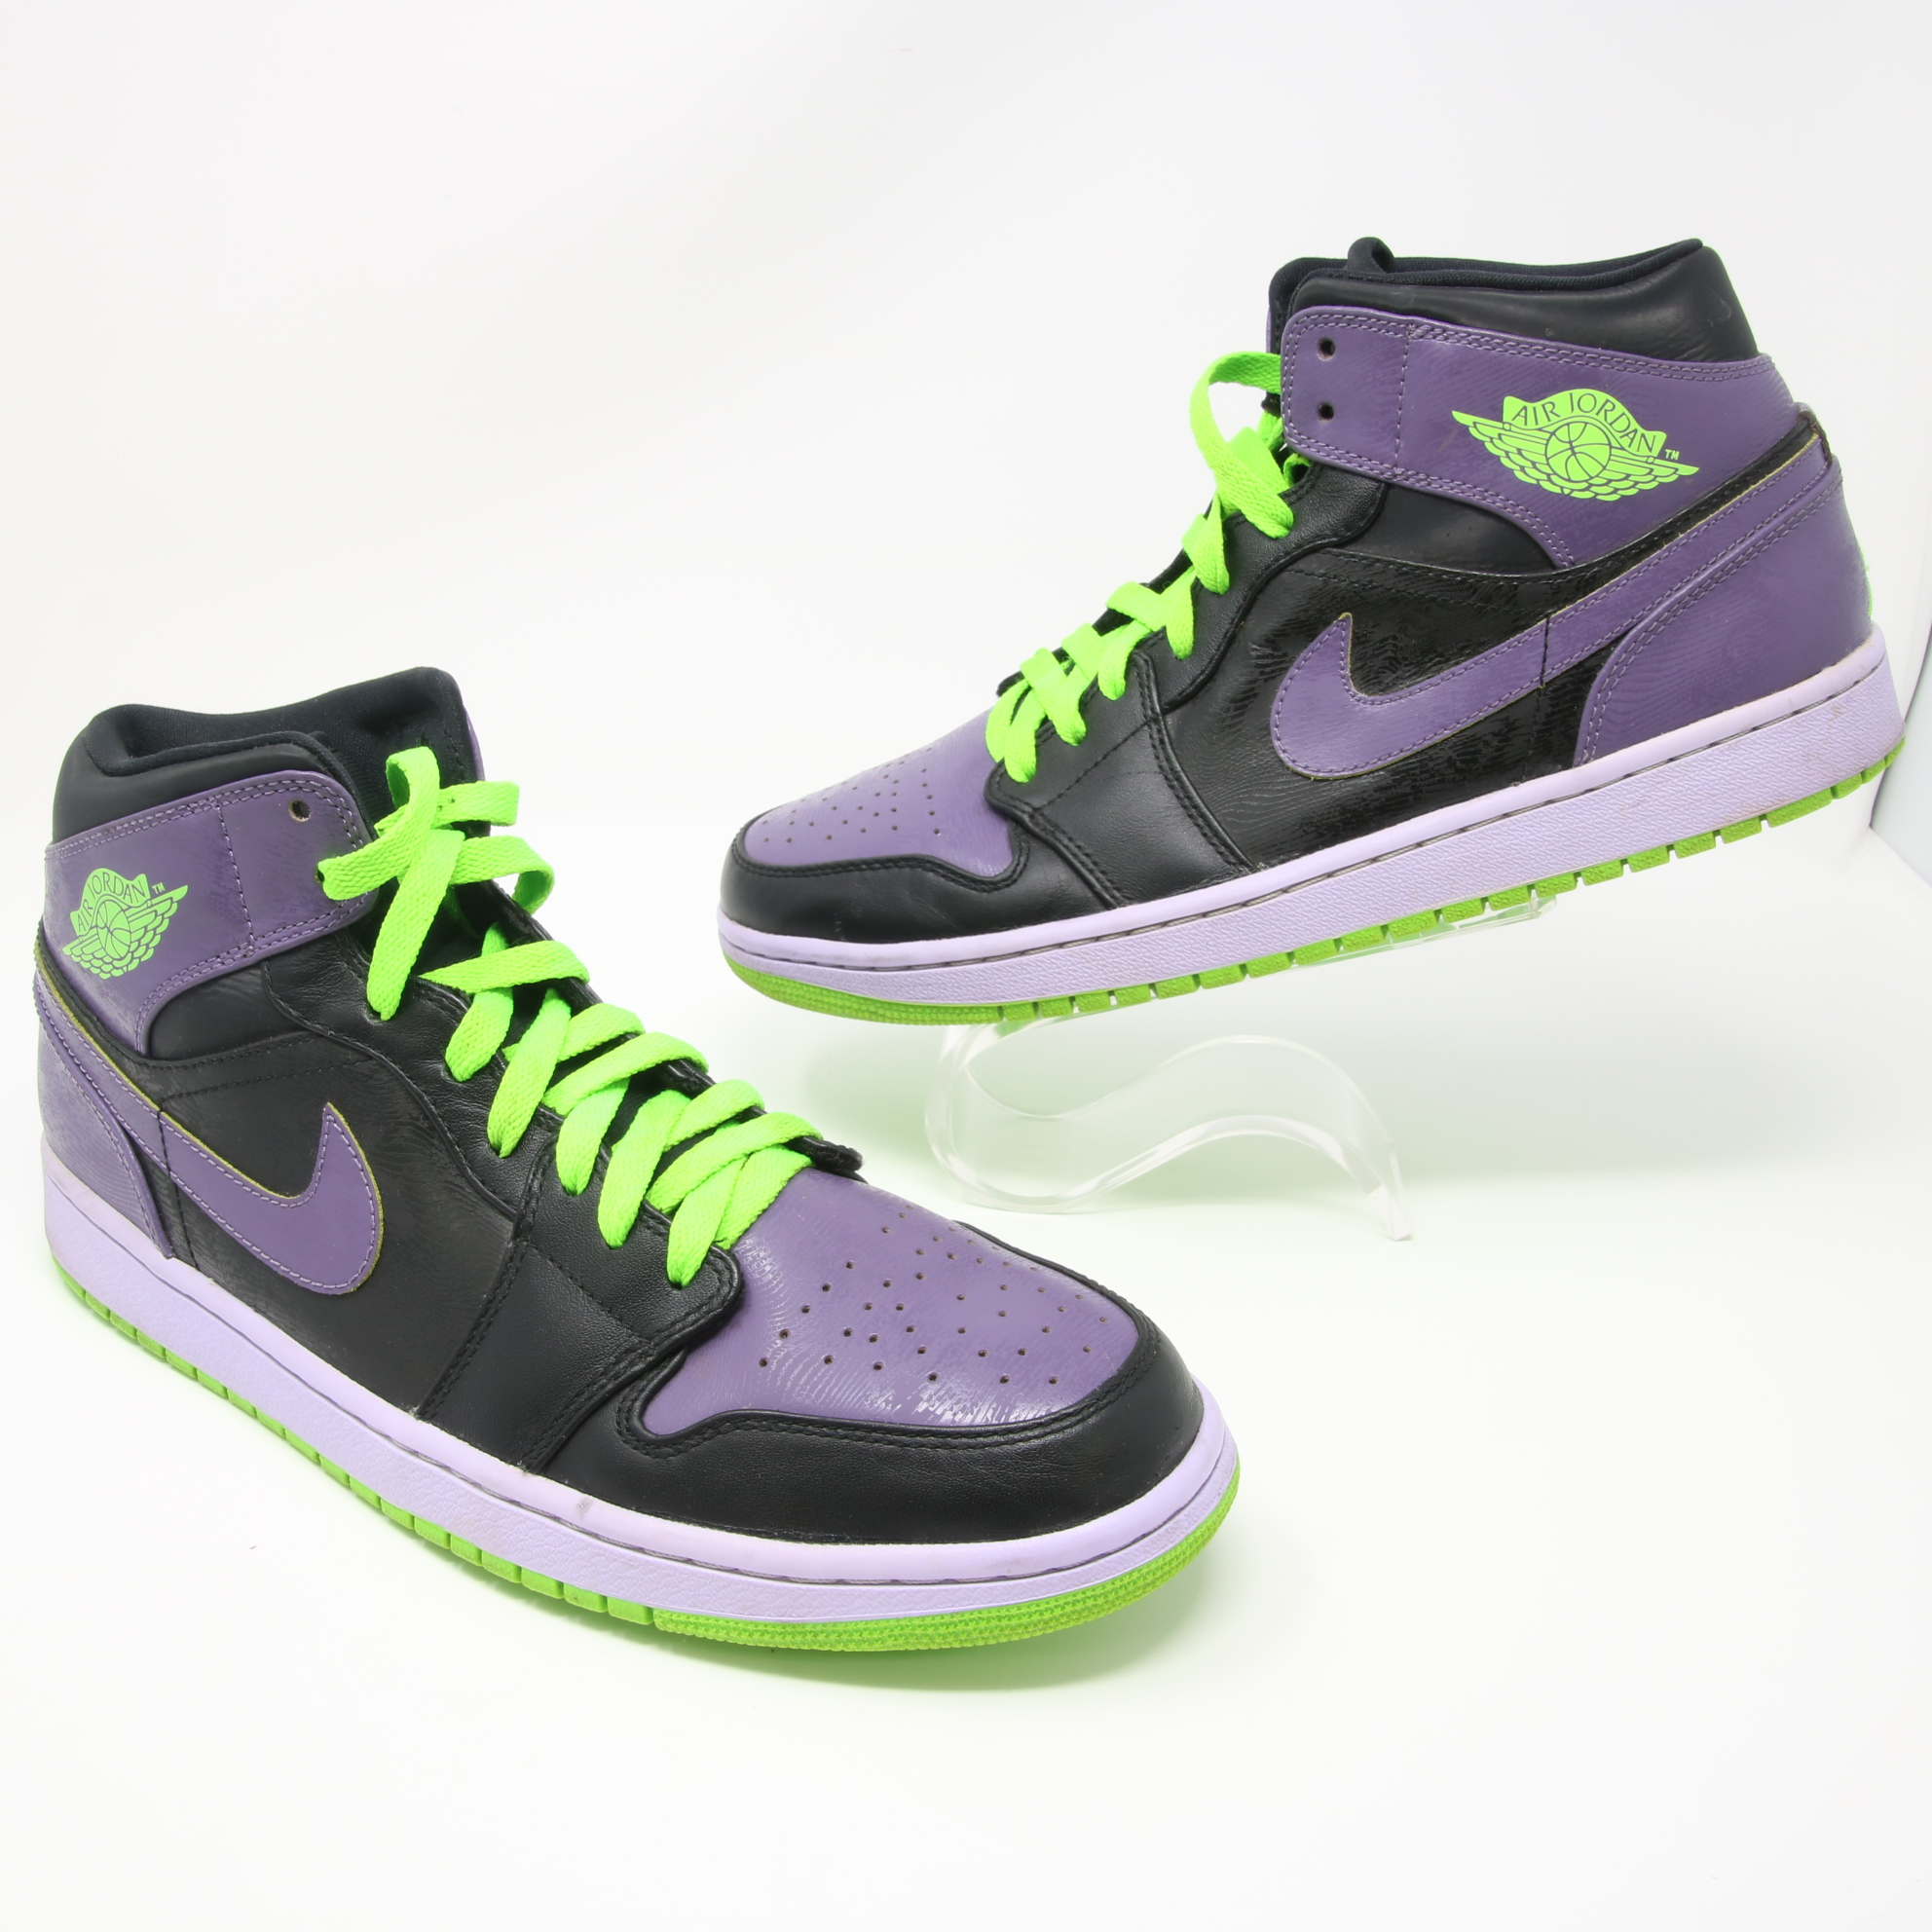 new style e6053 7b08e Nike ×. Signature Nike Air Jordan 1 Retro Joker Stealth Electric Green  Purple Sneakers 136065-021 Size 10. Size  US 10   EU 43